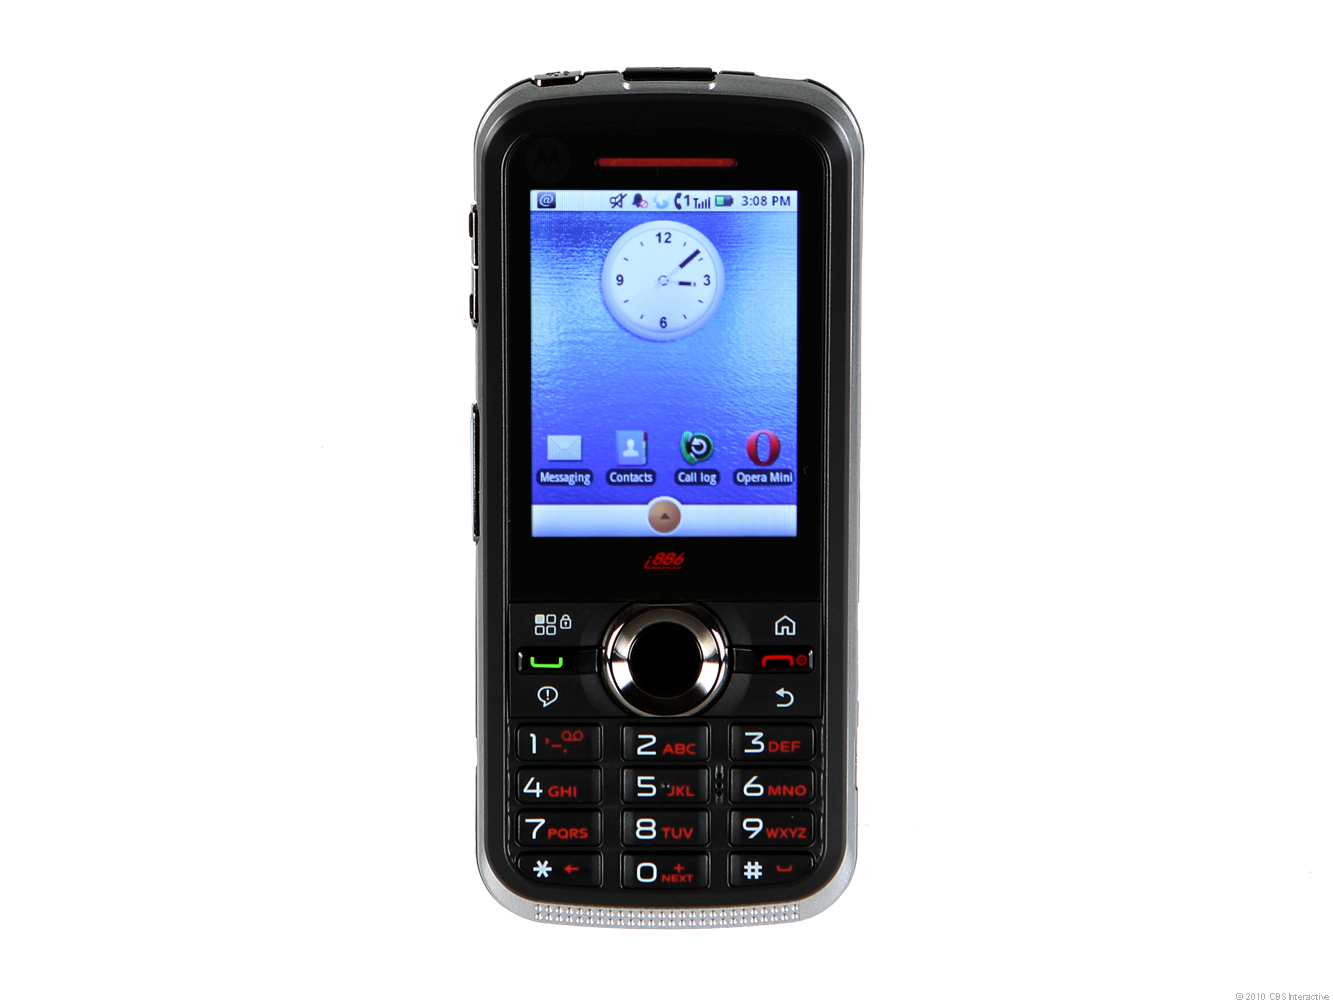 The Motorola i886 has home screens and menus that have a definite Android look and feel.